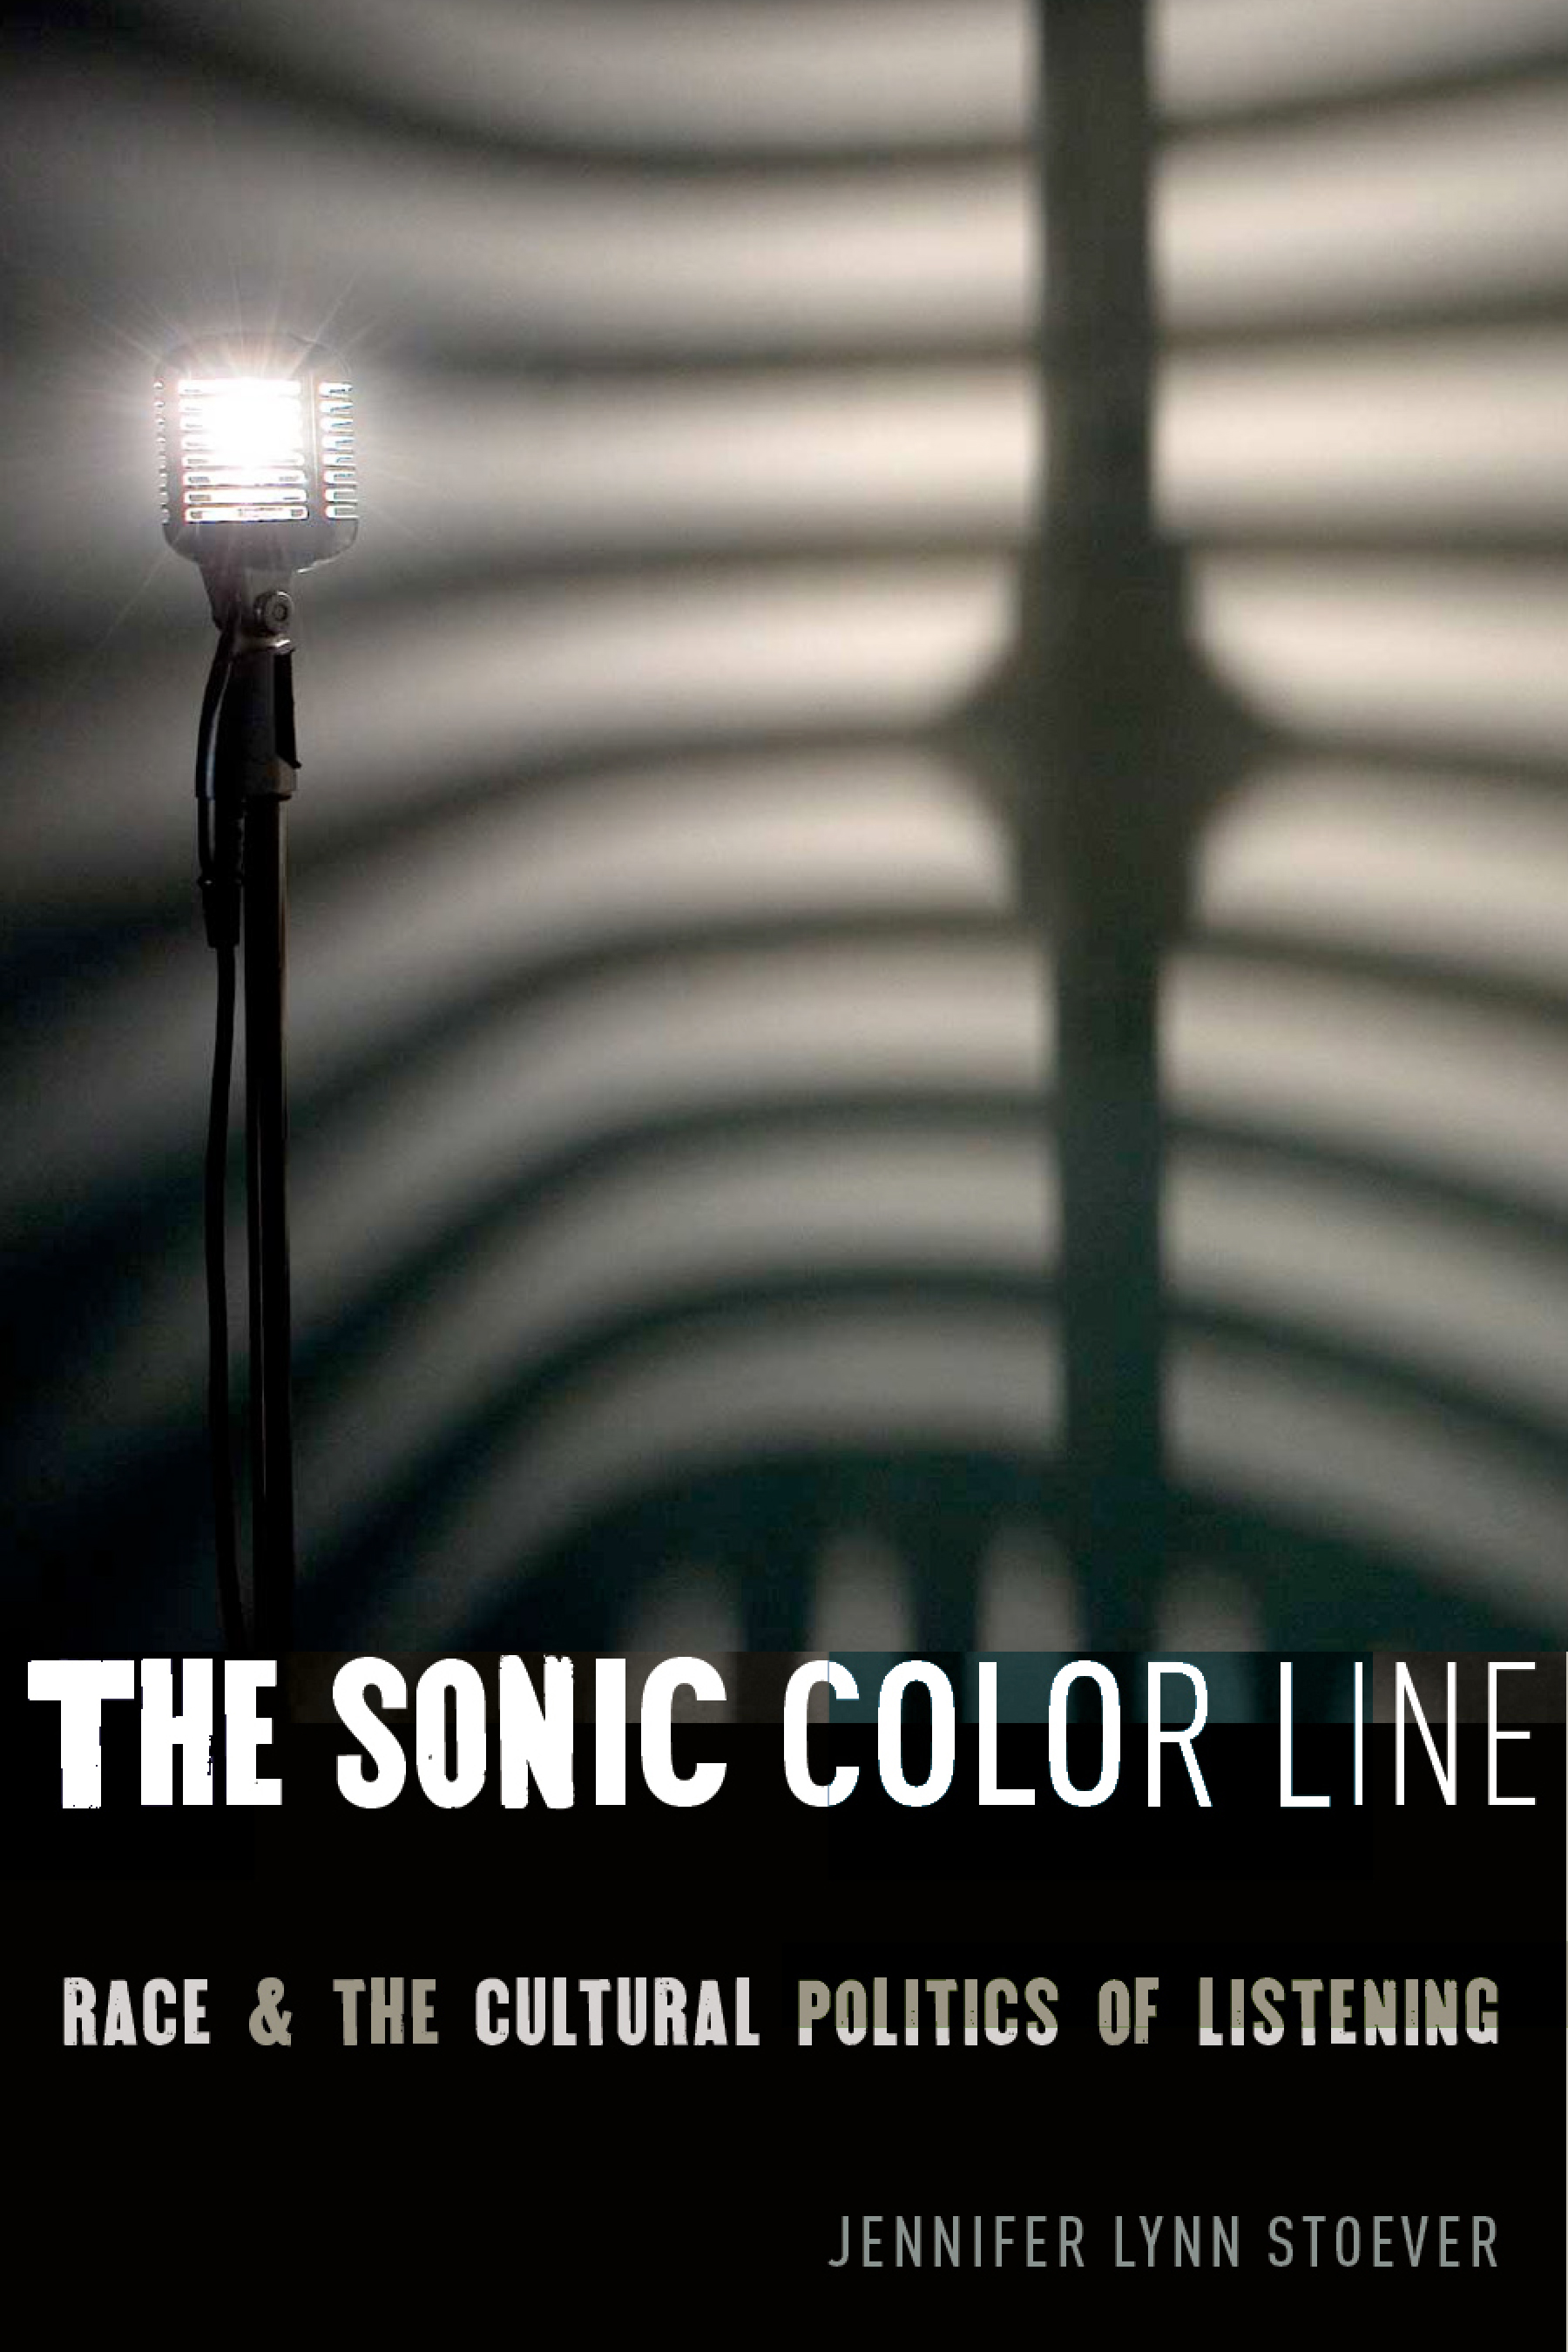 The Sonic Color Line